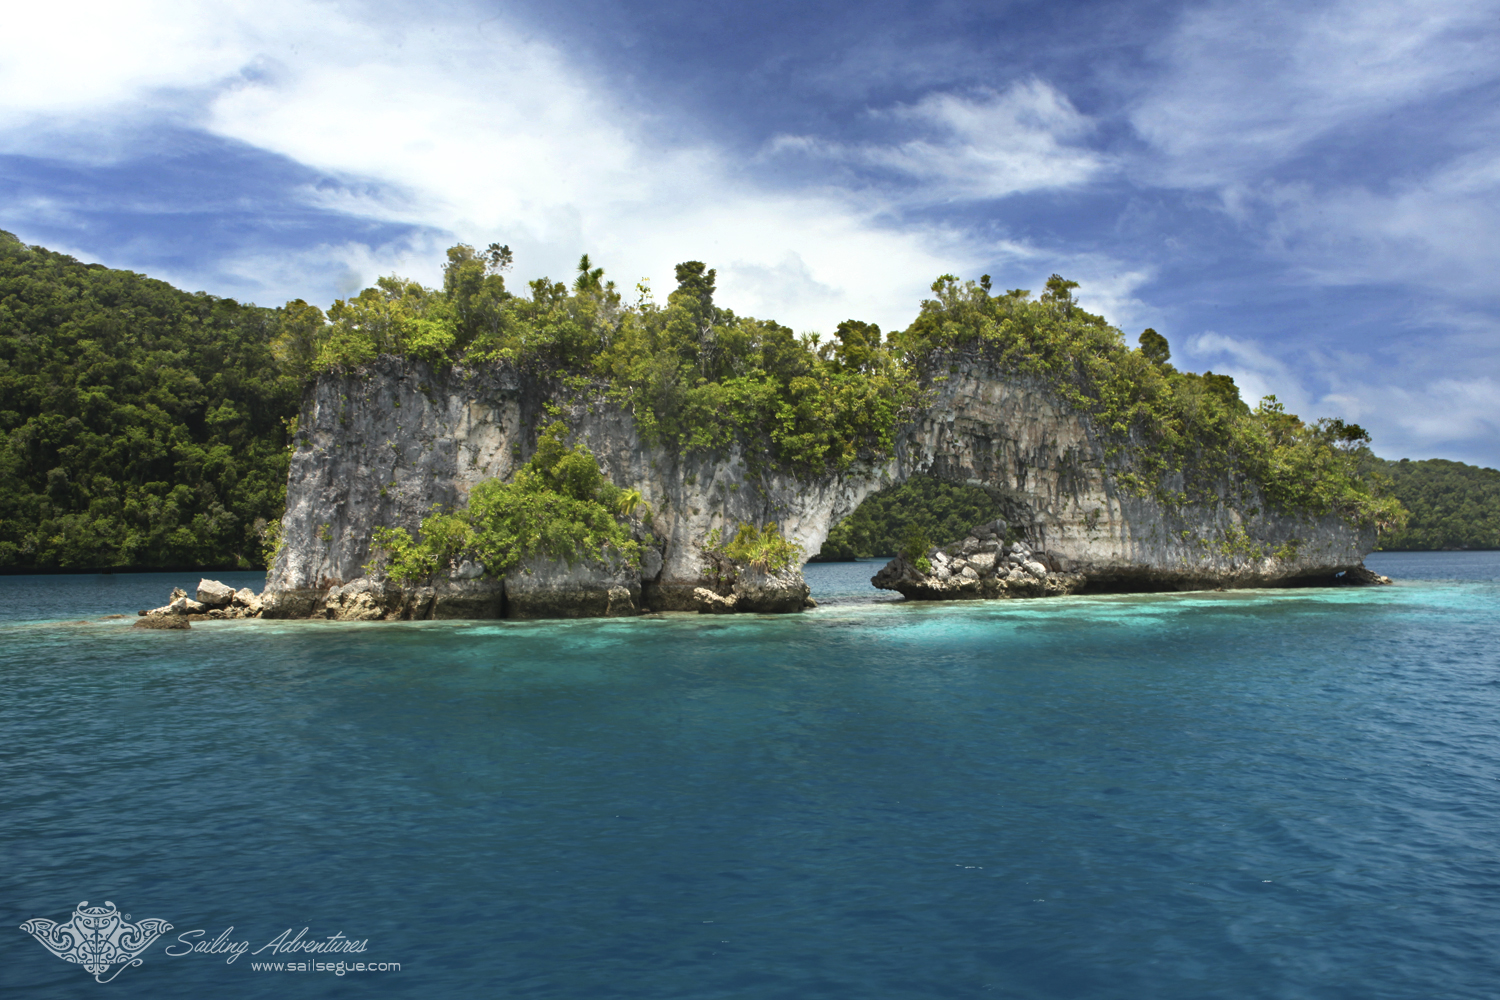 In Palau, natural beauty is never far!